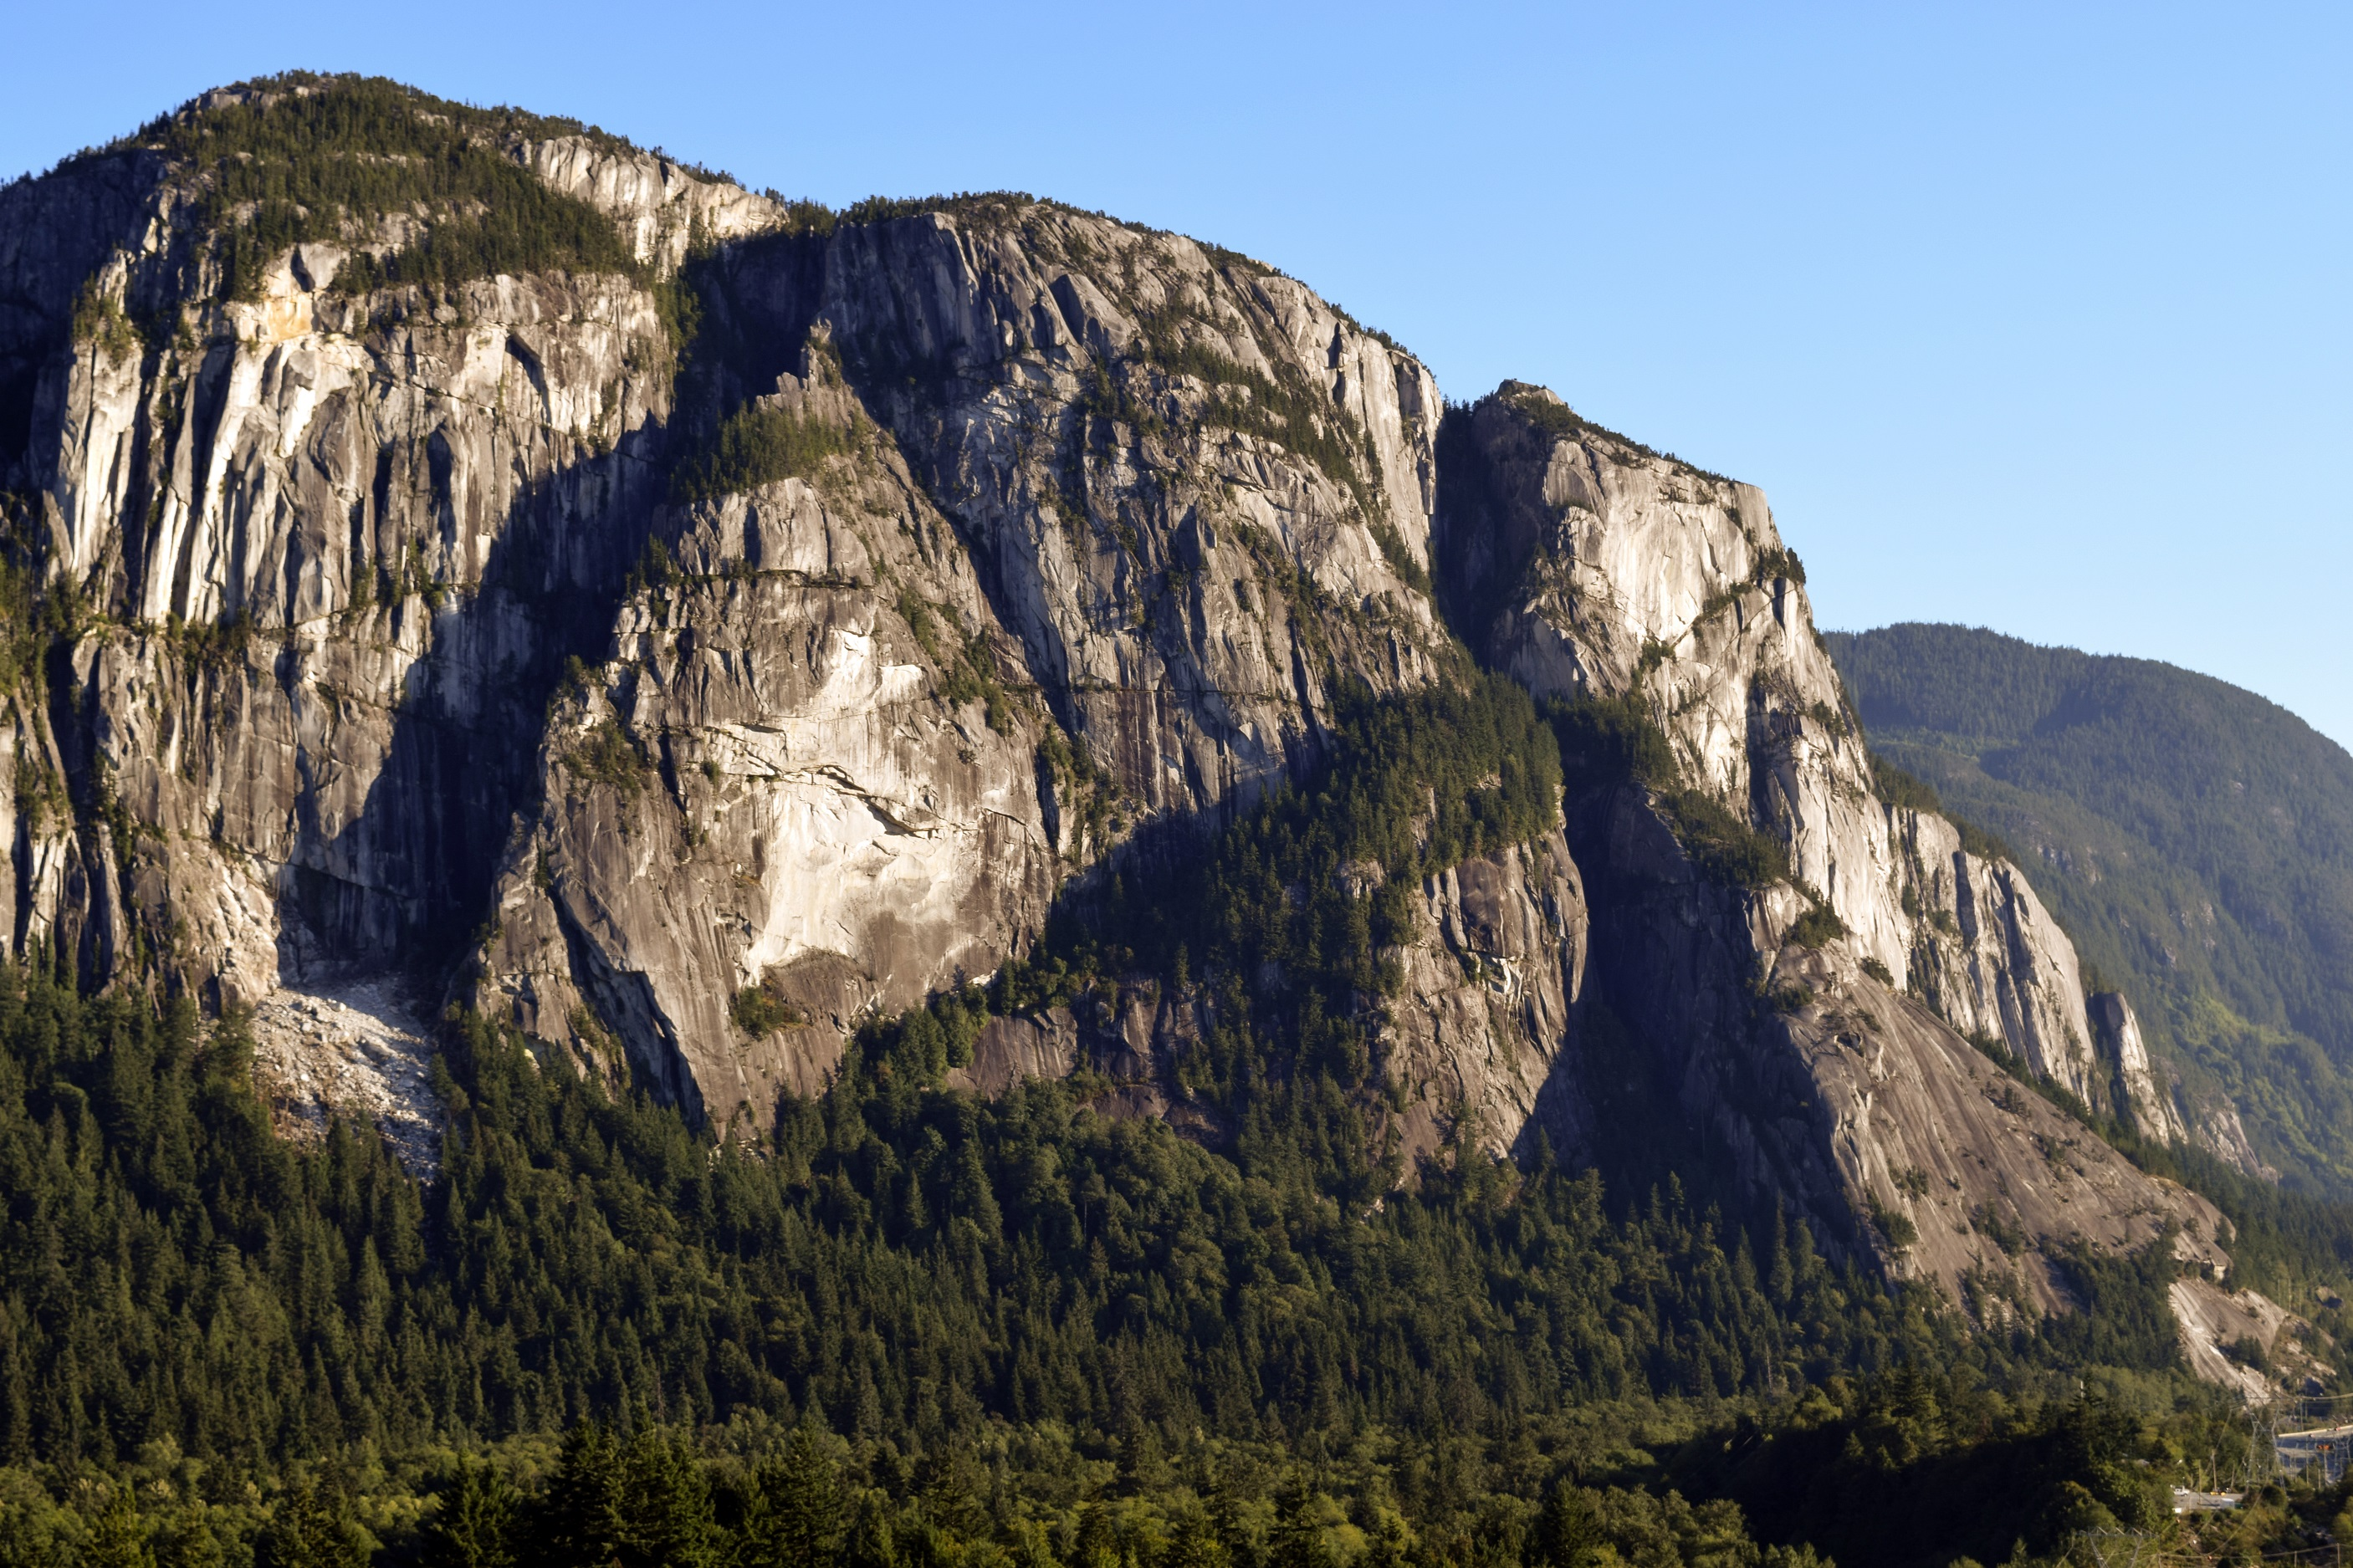 View of the Stawamus Chief in Squamish, British Columbia, Canada.